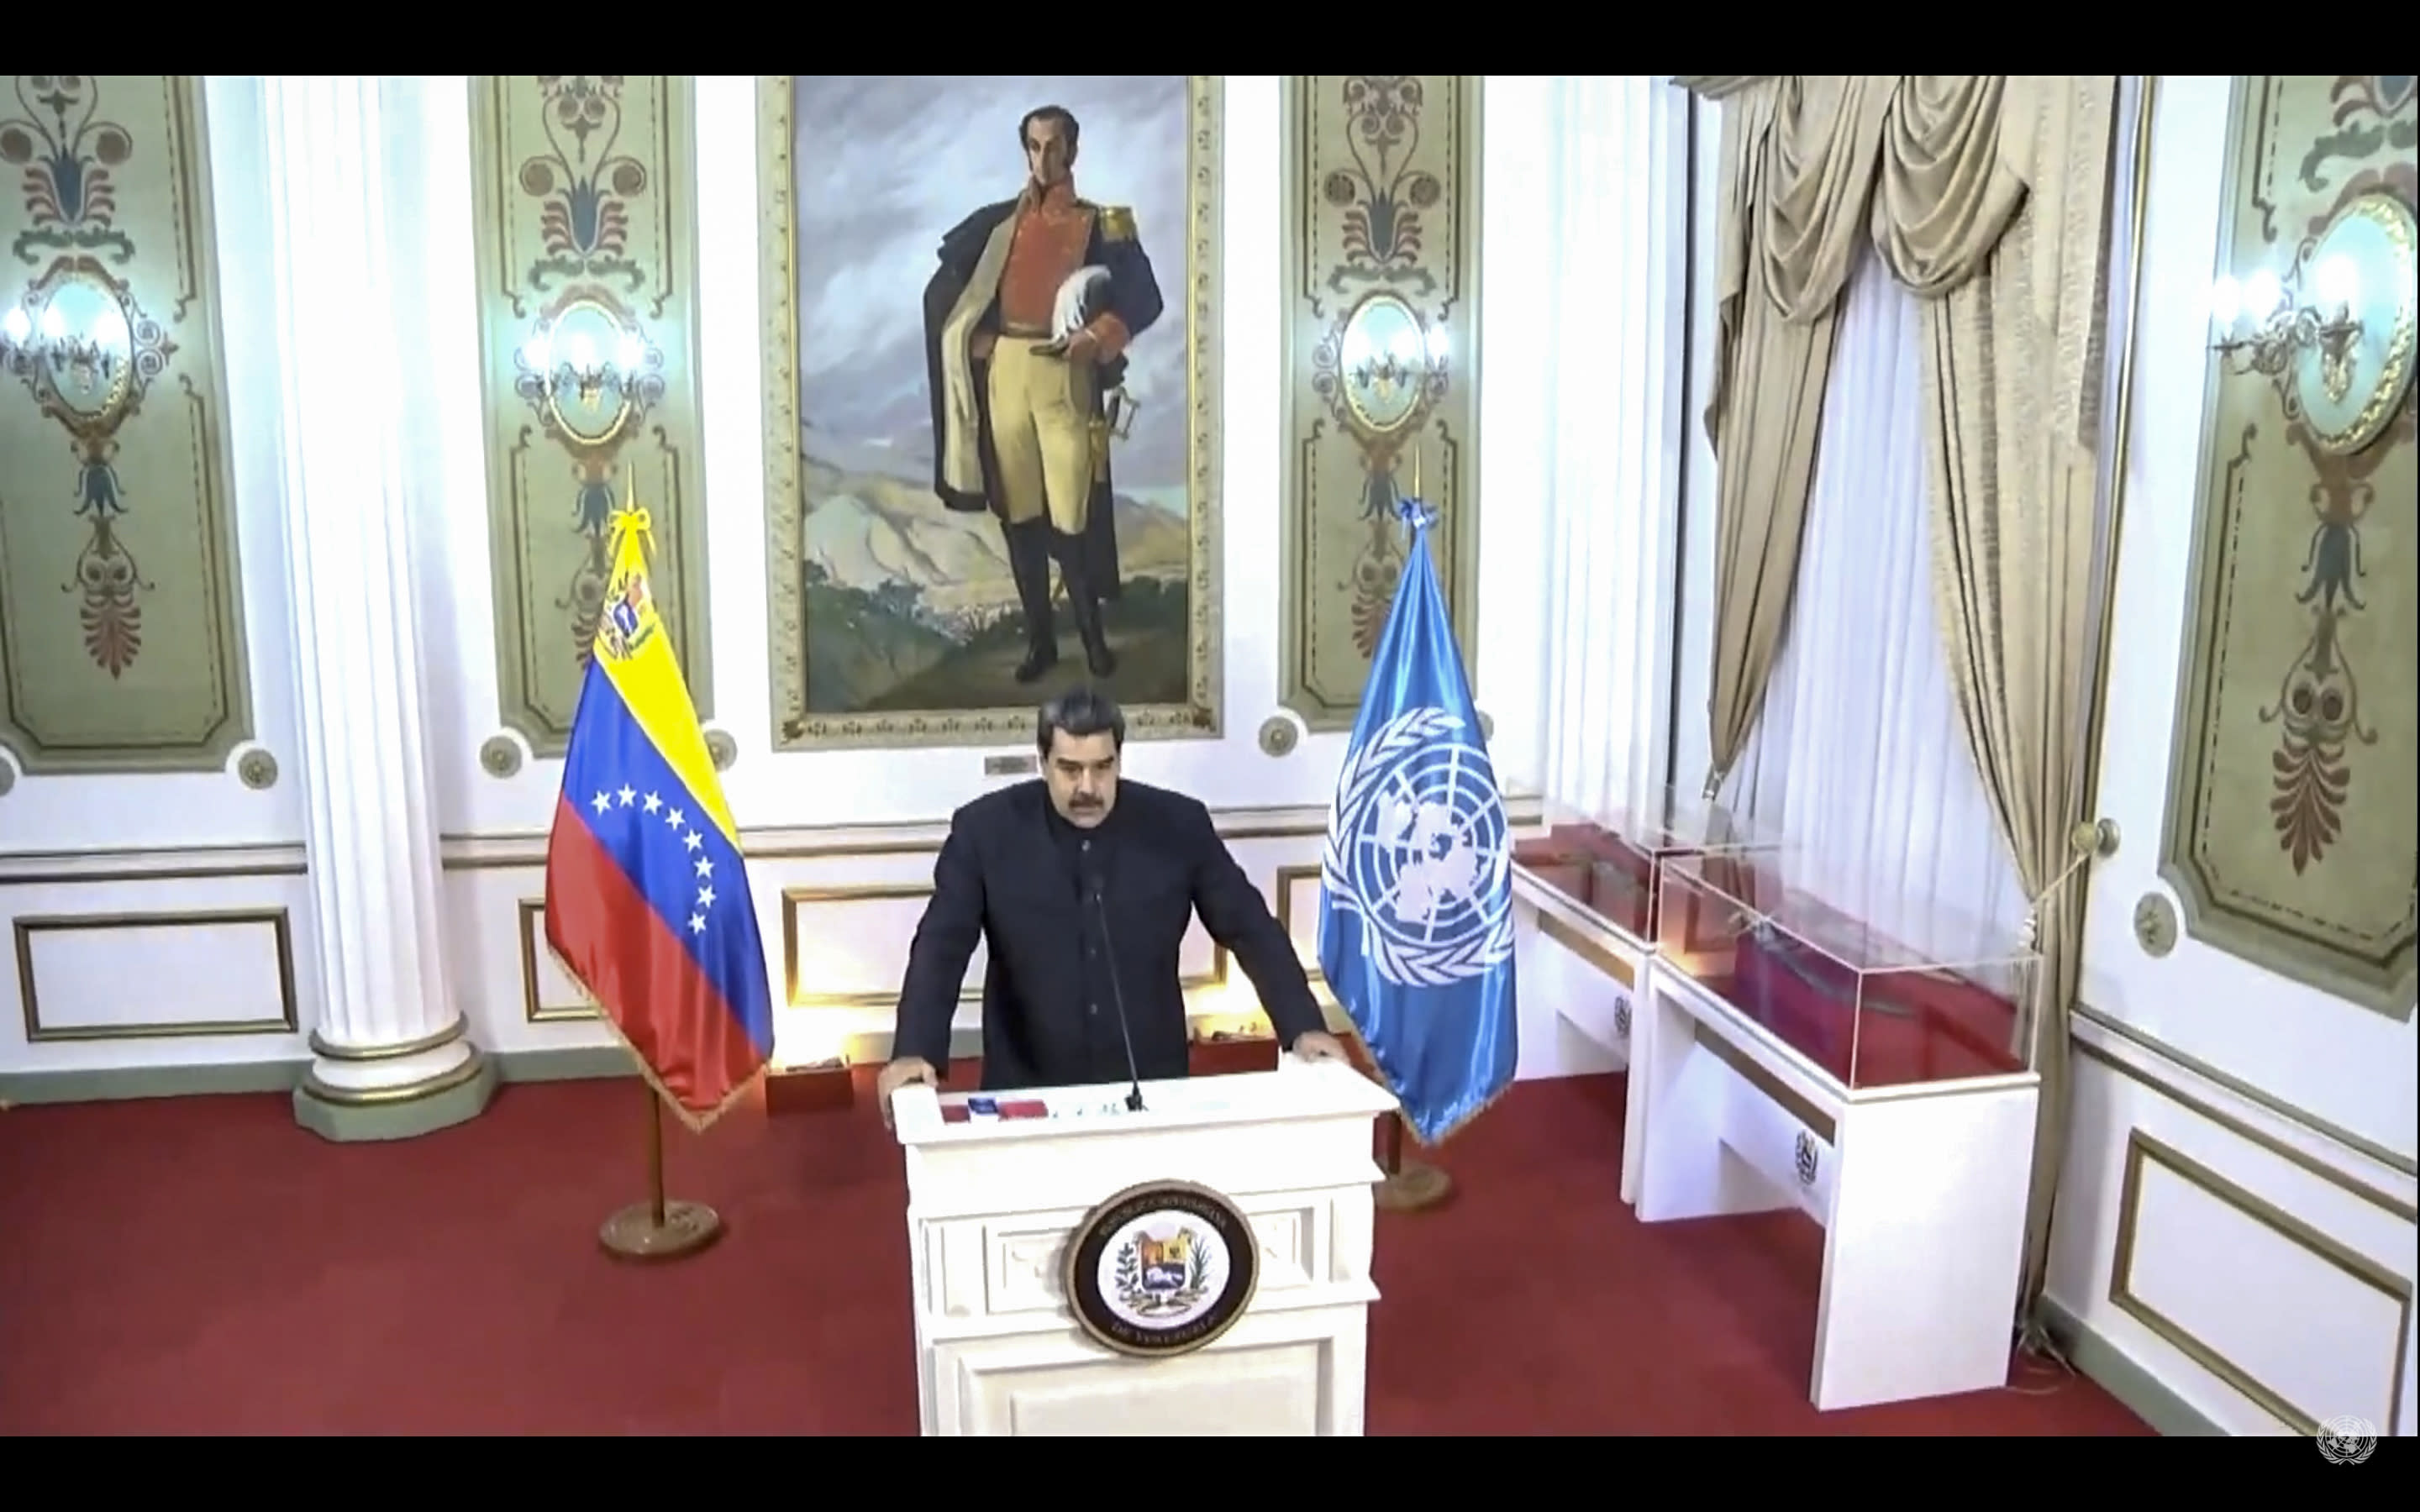 In this UNTV image, Nicolás Maduro Moros, President of Venezuela, speaks in a pre-recorded video message during the 75th session of the United Nations General Assembly, Wednesday, Sept. 23, 2020, at UN Headquarters. Protests against racial injustice aren't just part of the United States' national conversation. America's foes have taken note too, using the demonstrations and images of police violence to criticize the country at the U.N. General Assembly this year. (UNTV via AP)